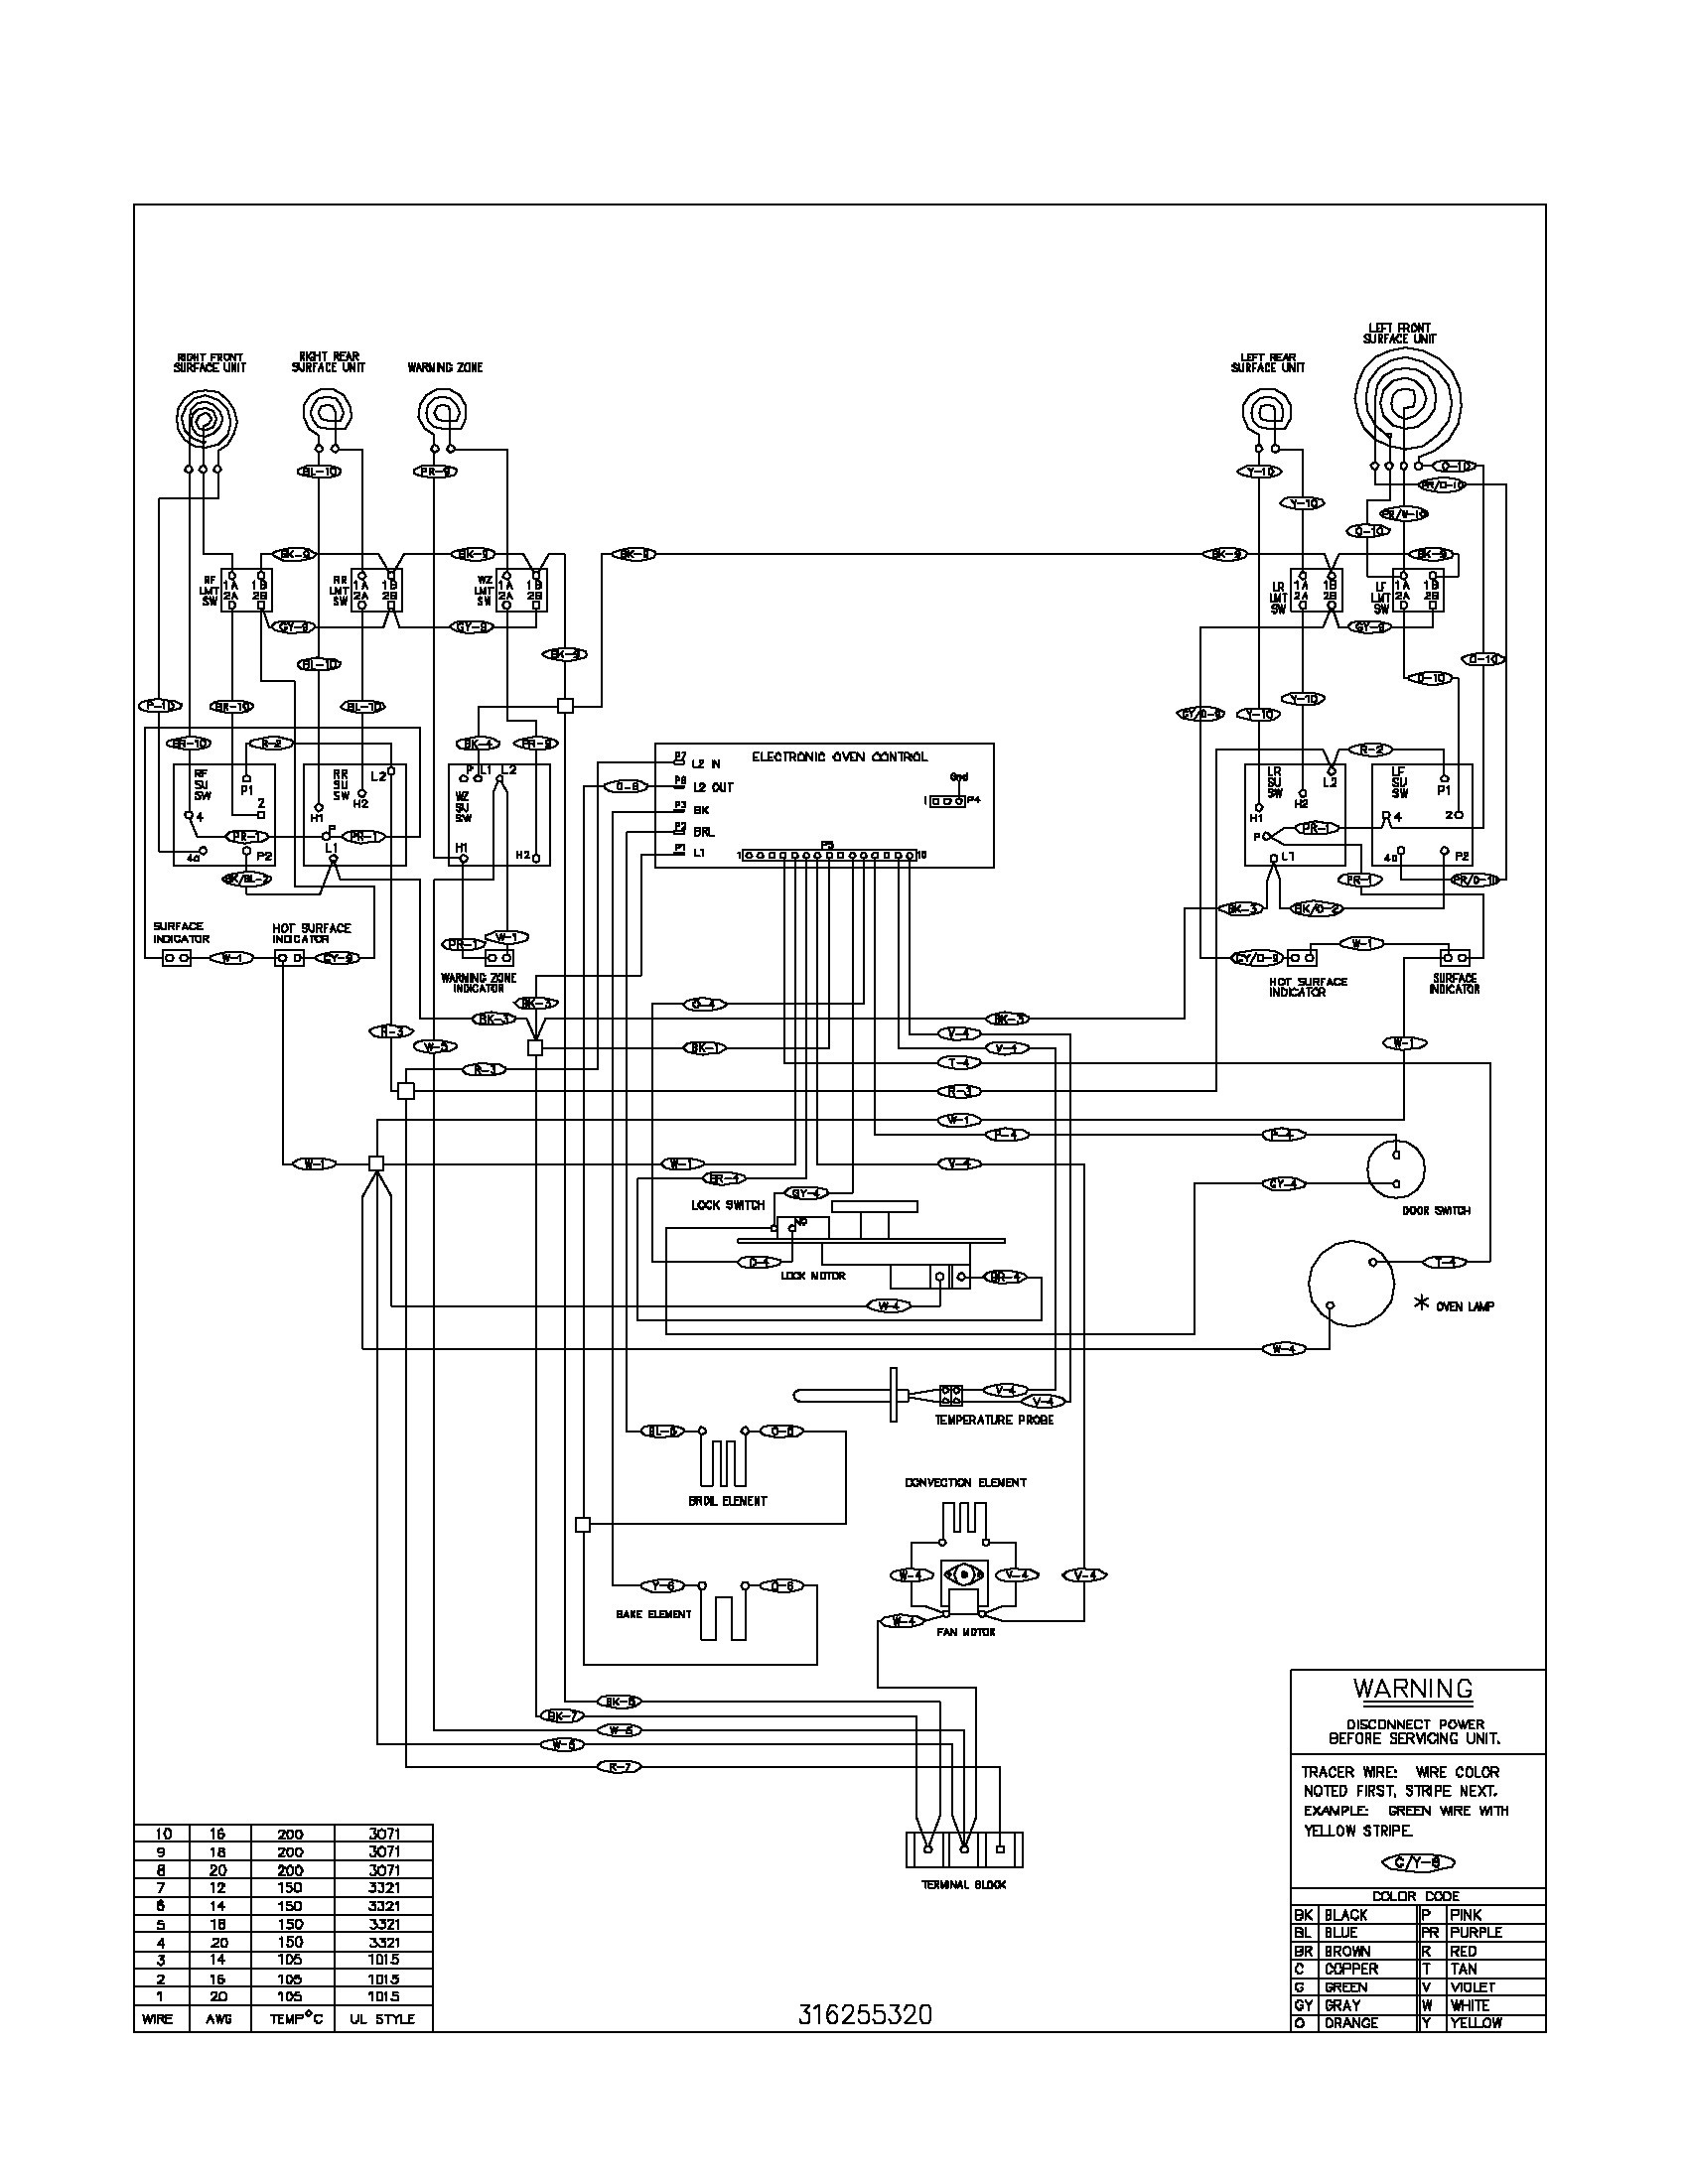 hight resolution of wiring diagram for whirlpool double ovens wiring diagram load wiring diagram for whirlpool double oven wiring diagram for whirlpool oven